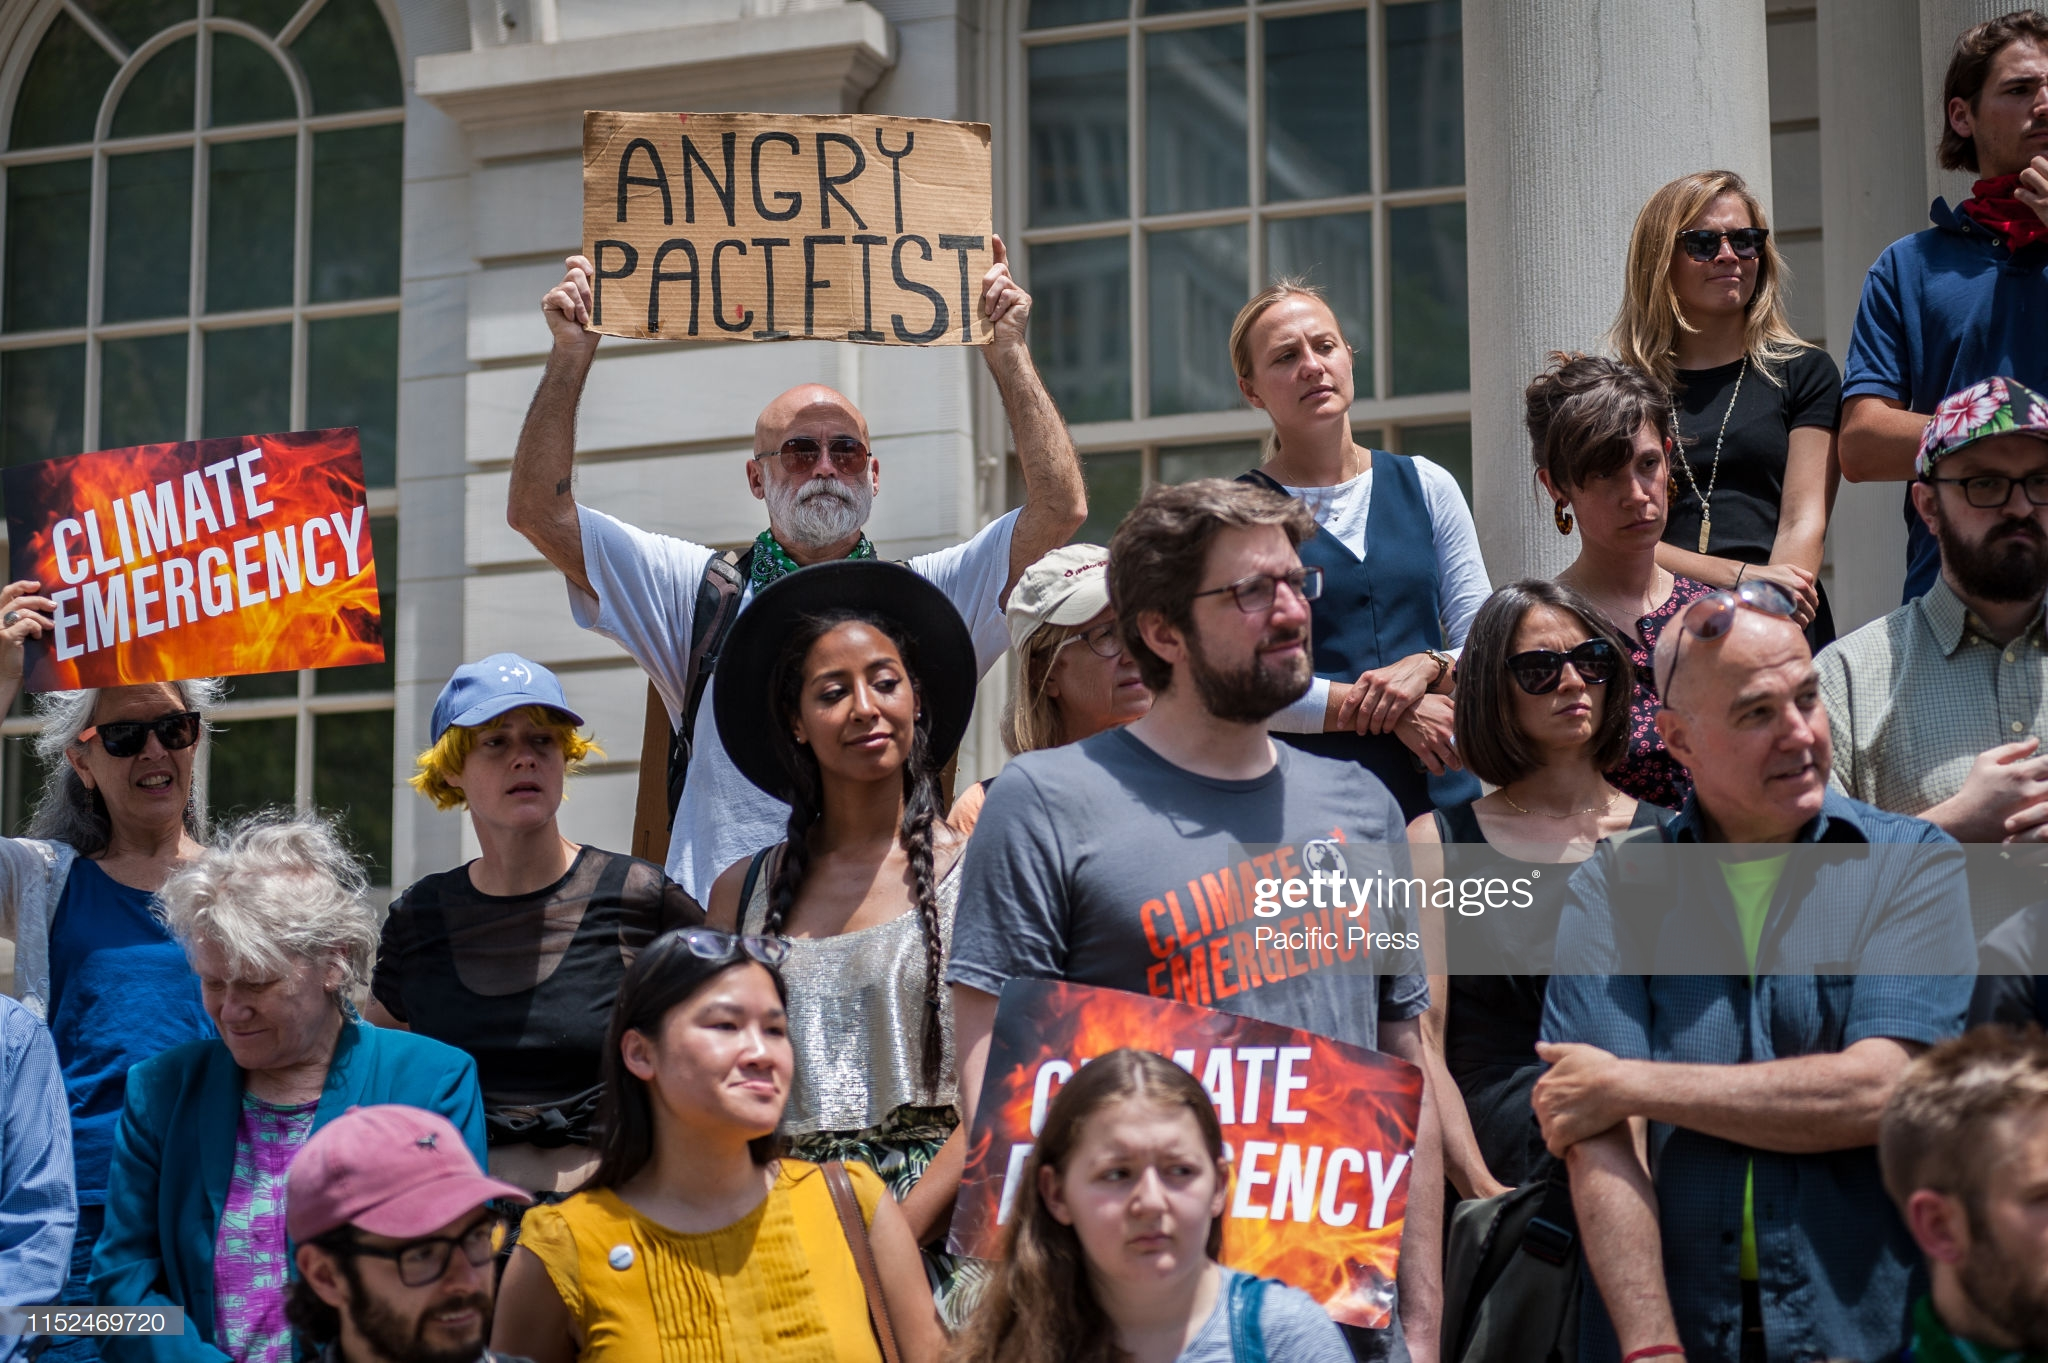 CITY HALL, NEW YORK, UNITED STATES - 2019/06/24: Climate activists and NYC Council members holding a banner as they held a rally on the steps of City Hall, New York, in support of Resolution 0864-2019 which, if passed, would declare a climate emergency and call for an immediate emergency mobilization to restore a safe climate. (Photo by Gabriele Holtermann-Gorden/Pacific Press/LightRocket via Getty Images)